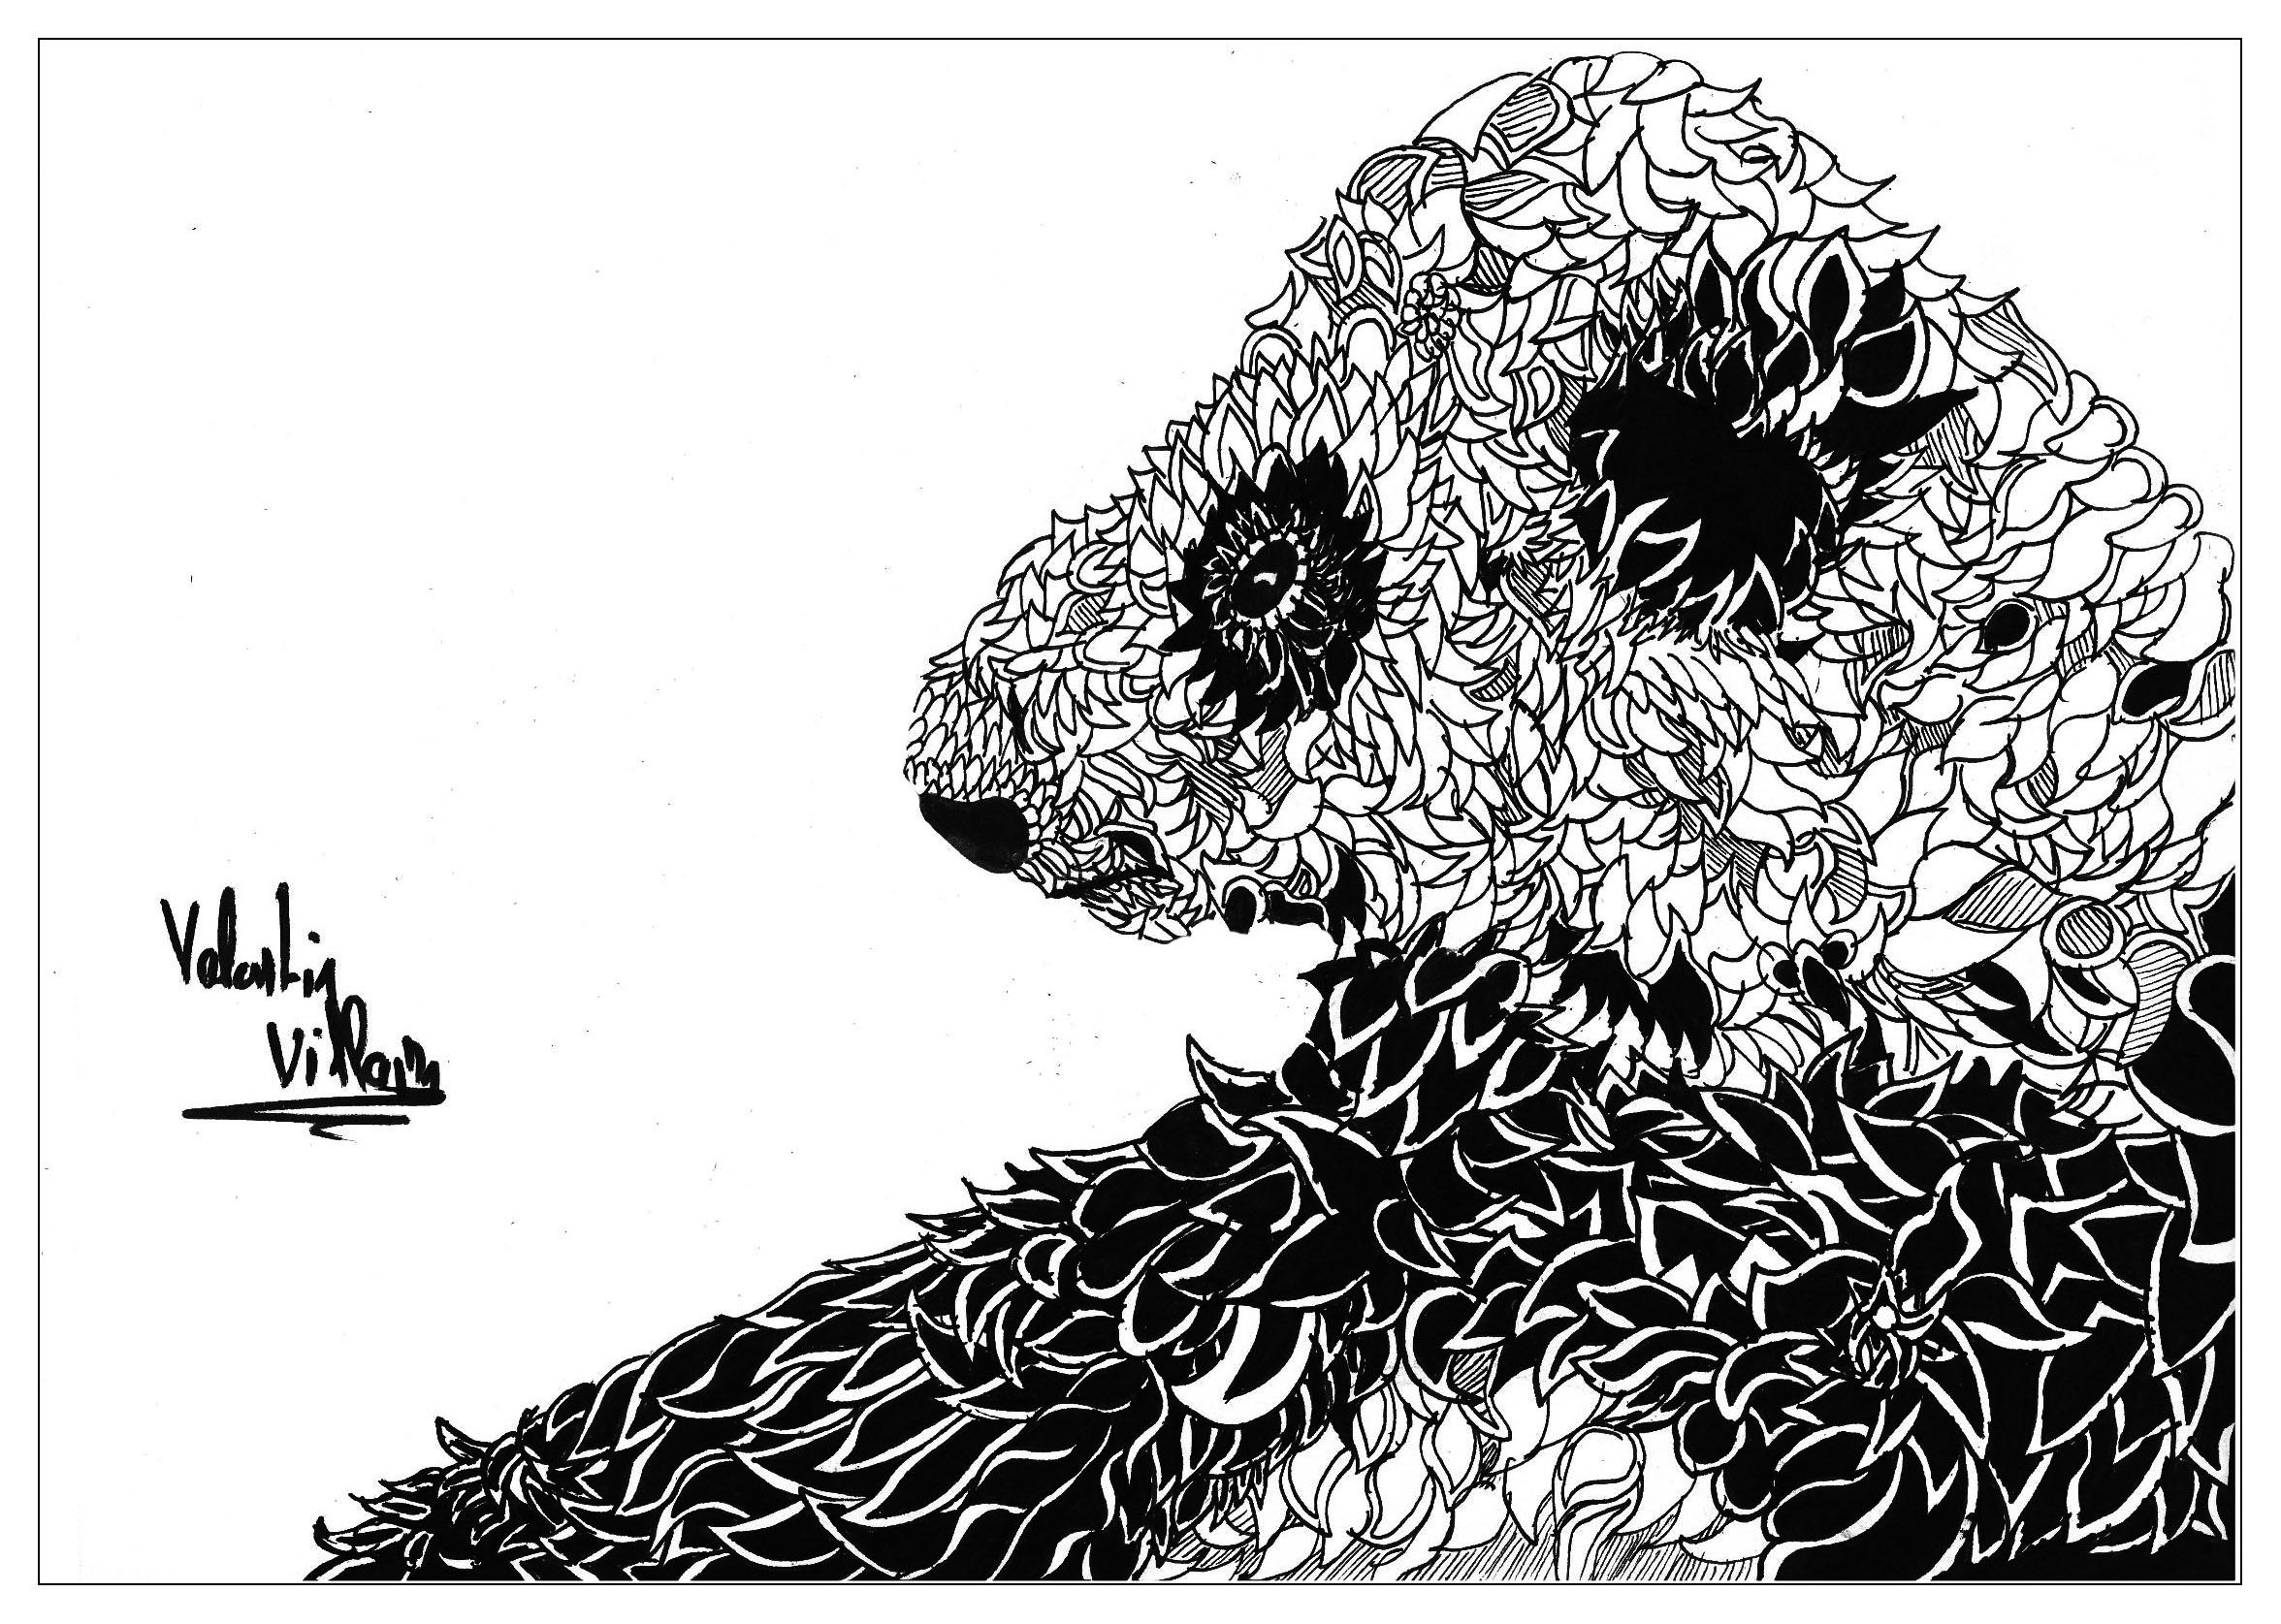 Ausmalbilder Zootiere: Detailed Animal Coloring Pages For Adults